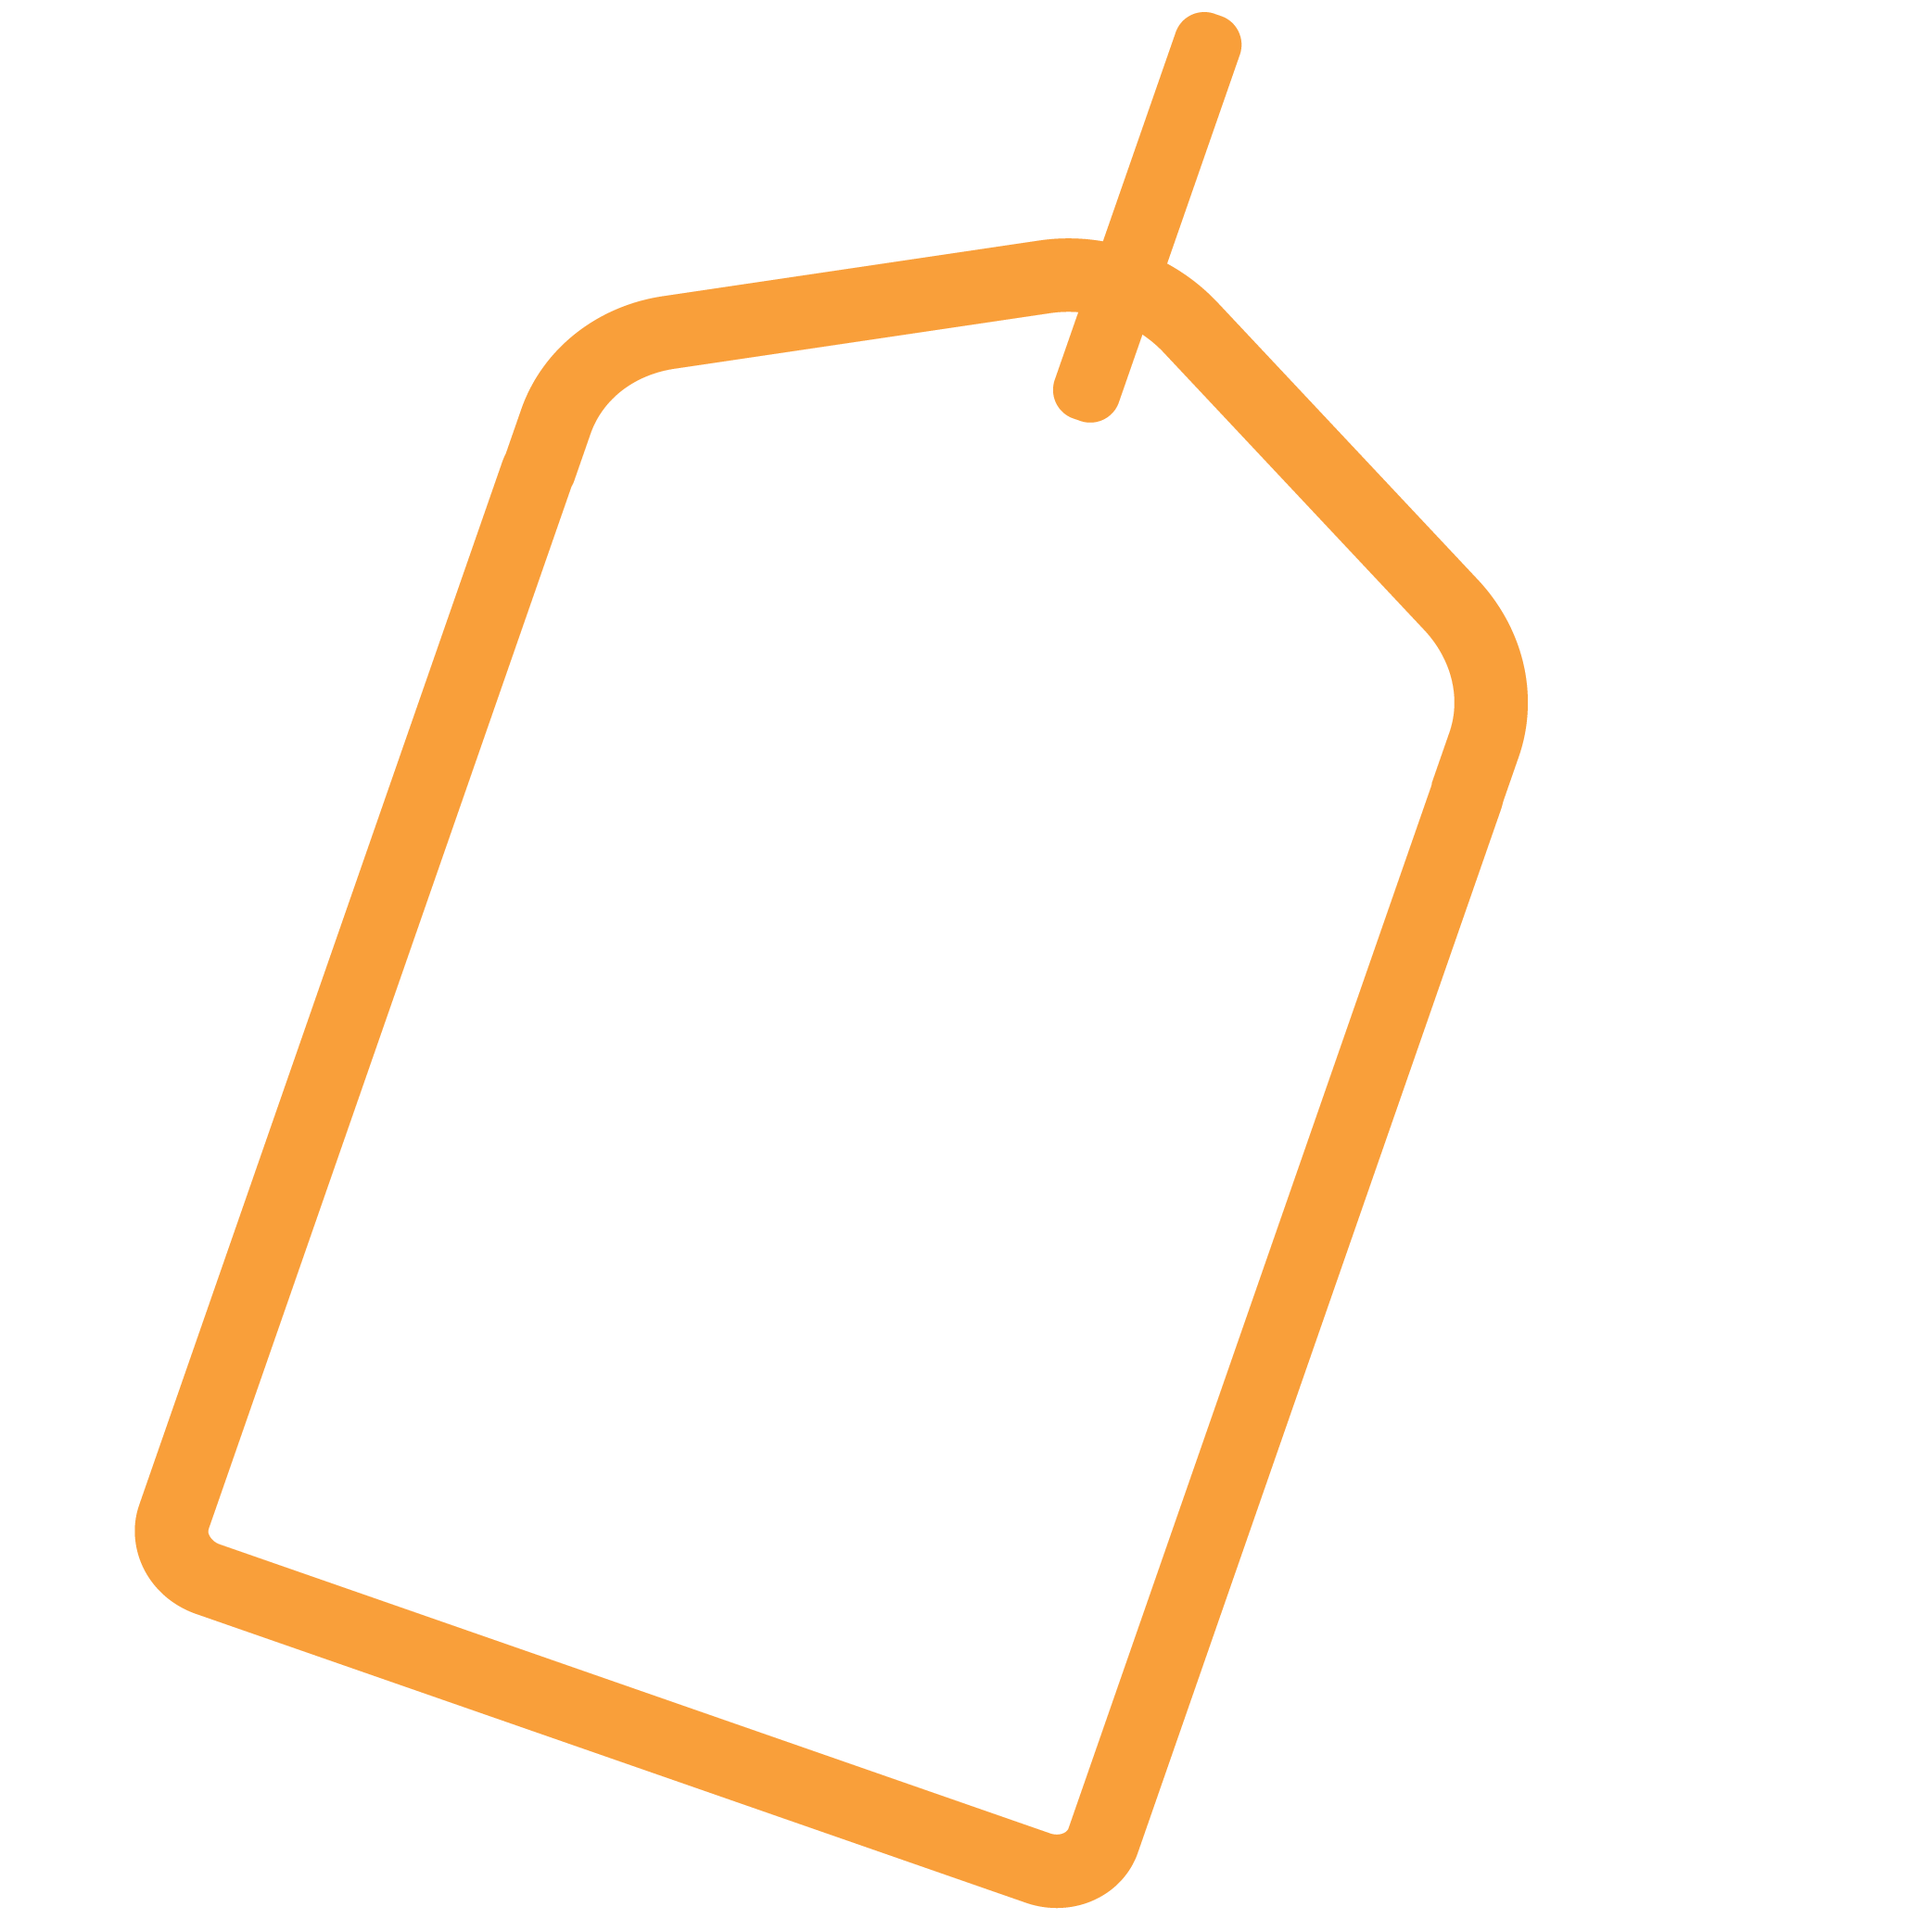 TECH_ICONS-03.png